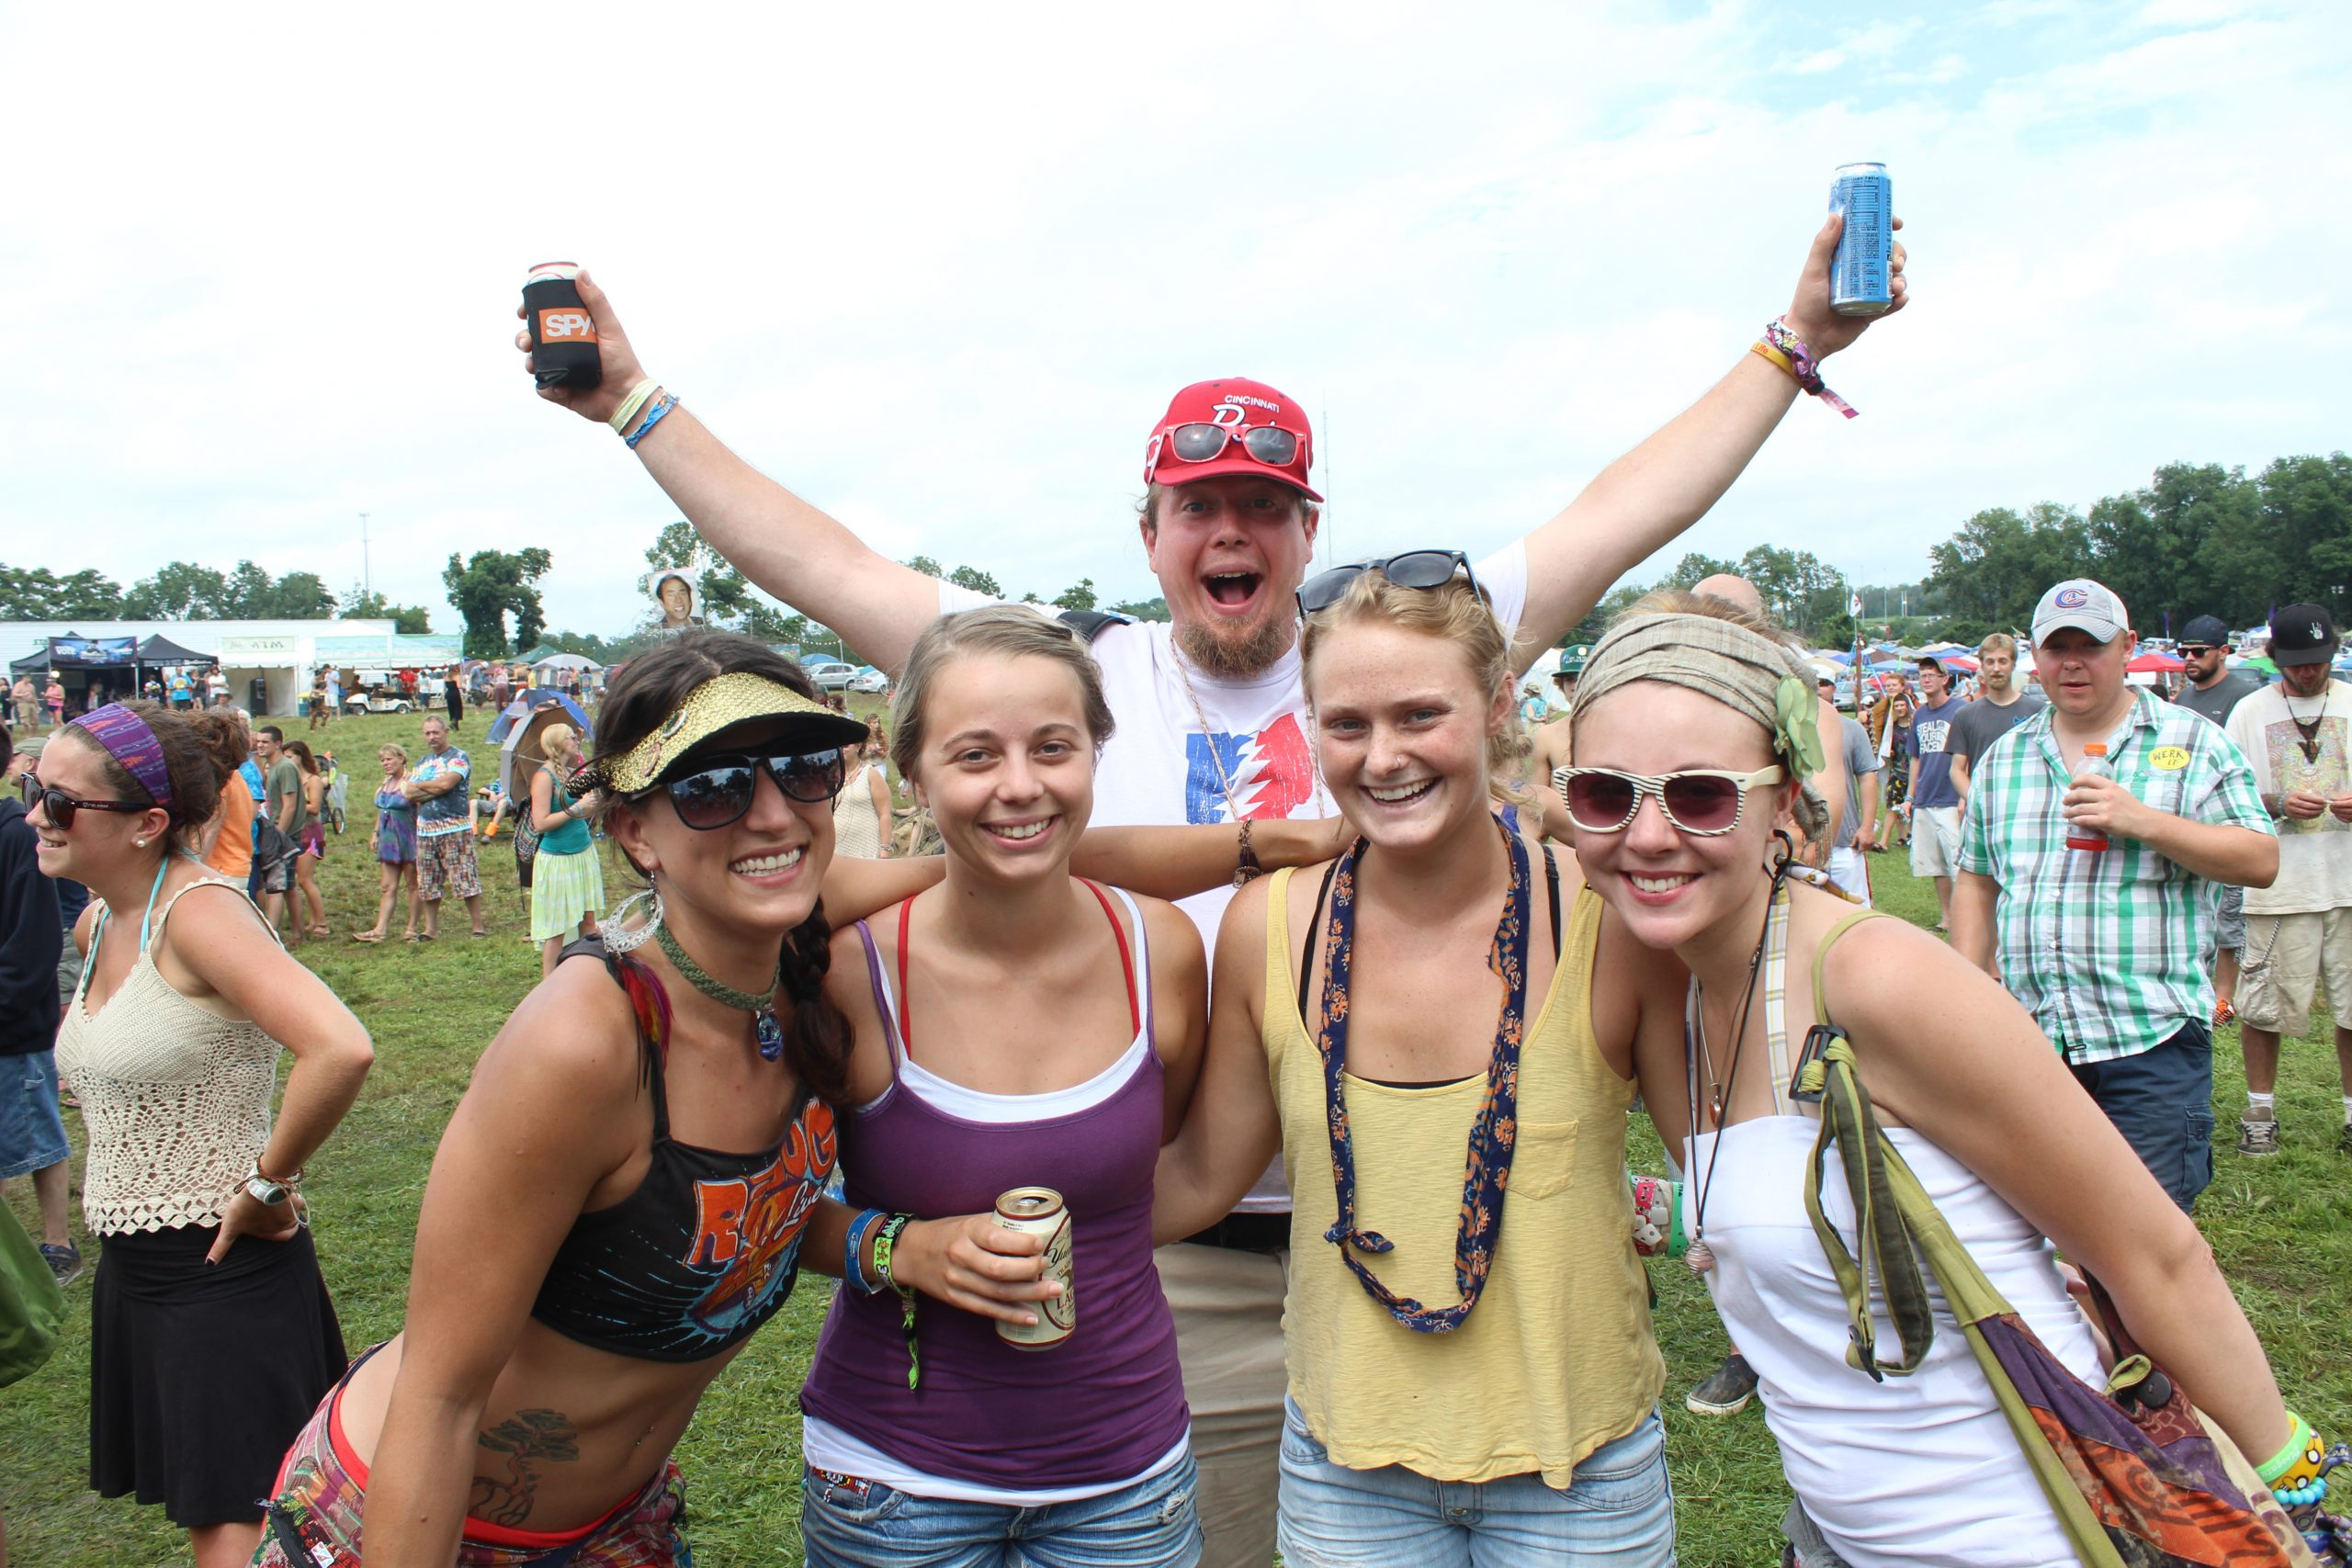 All Good Music Festival 2013 Review and Photo Gallery